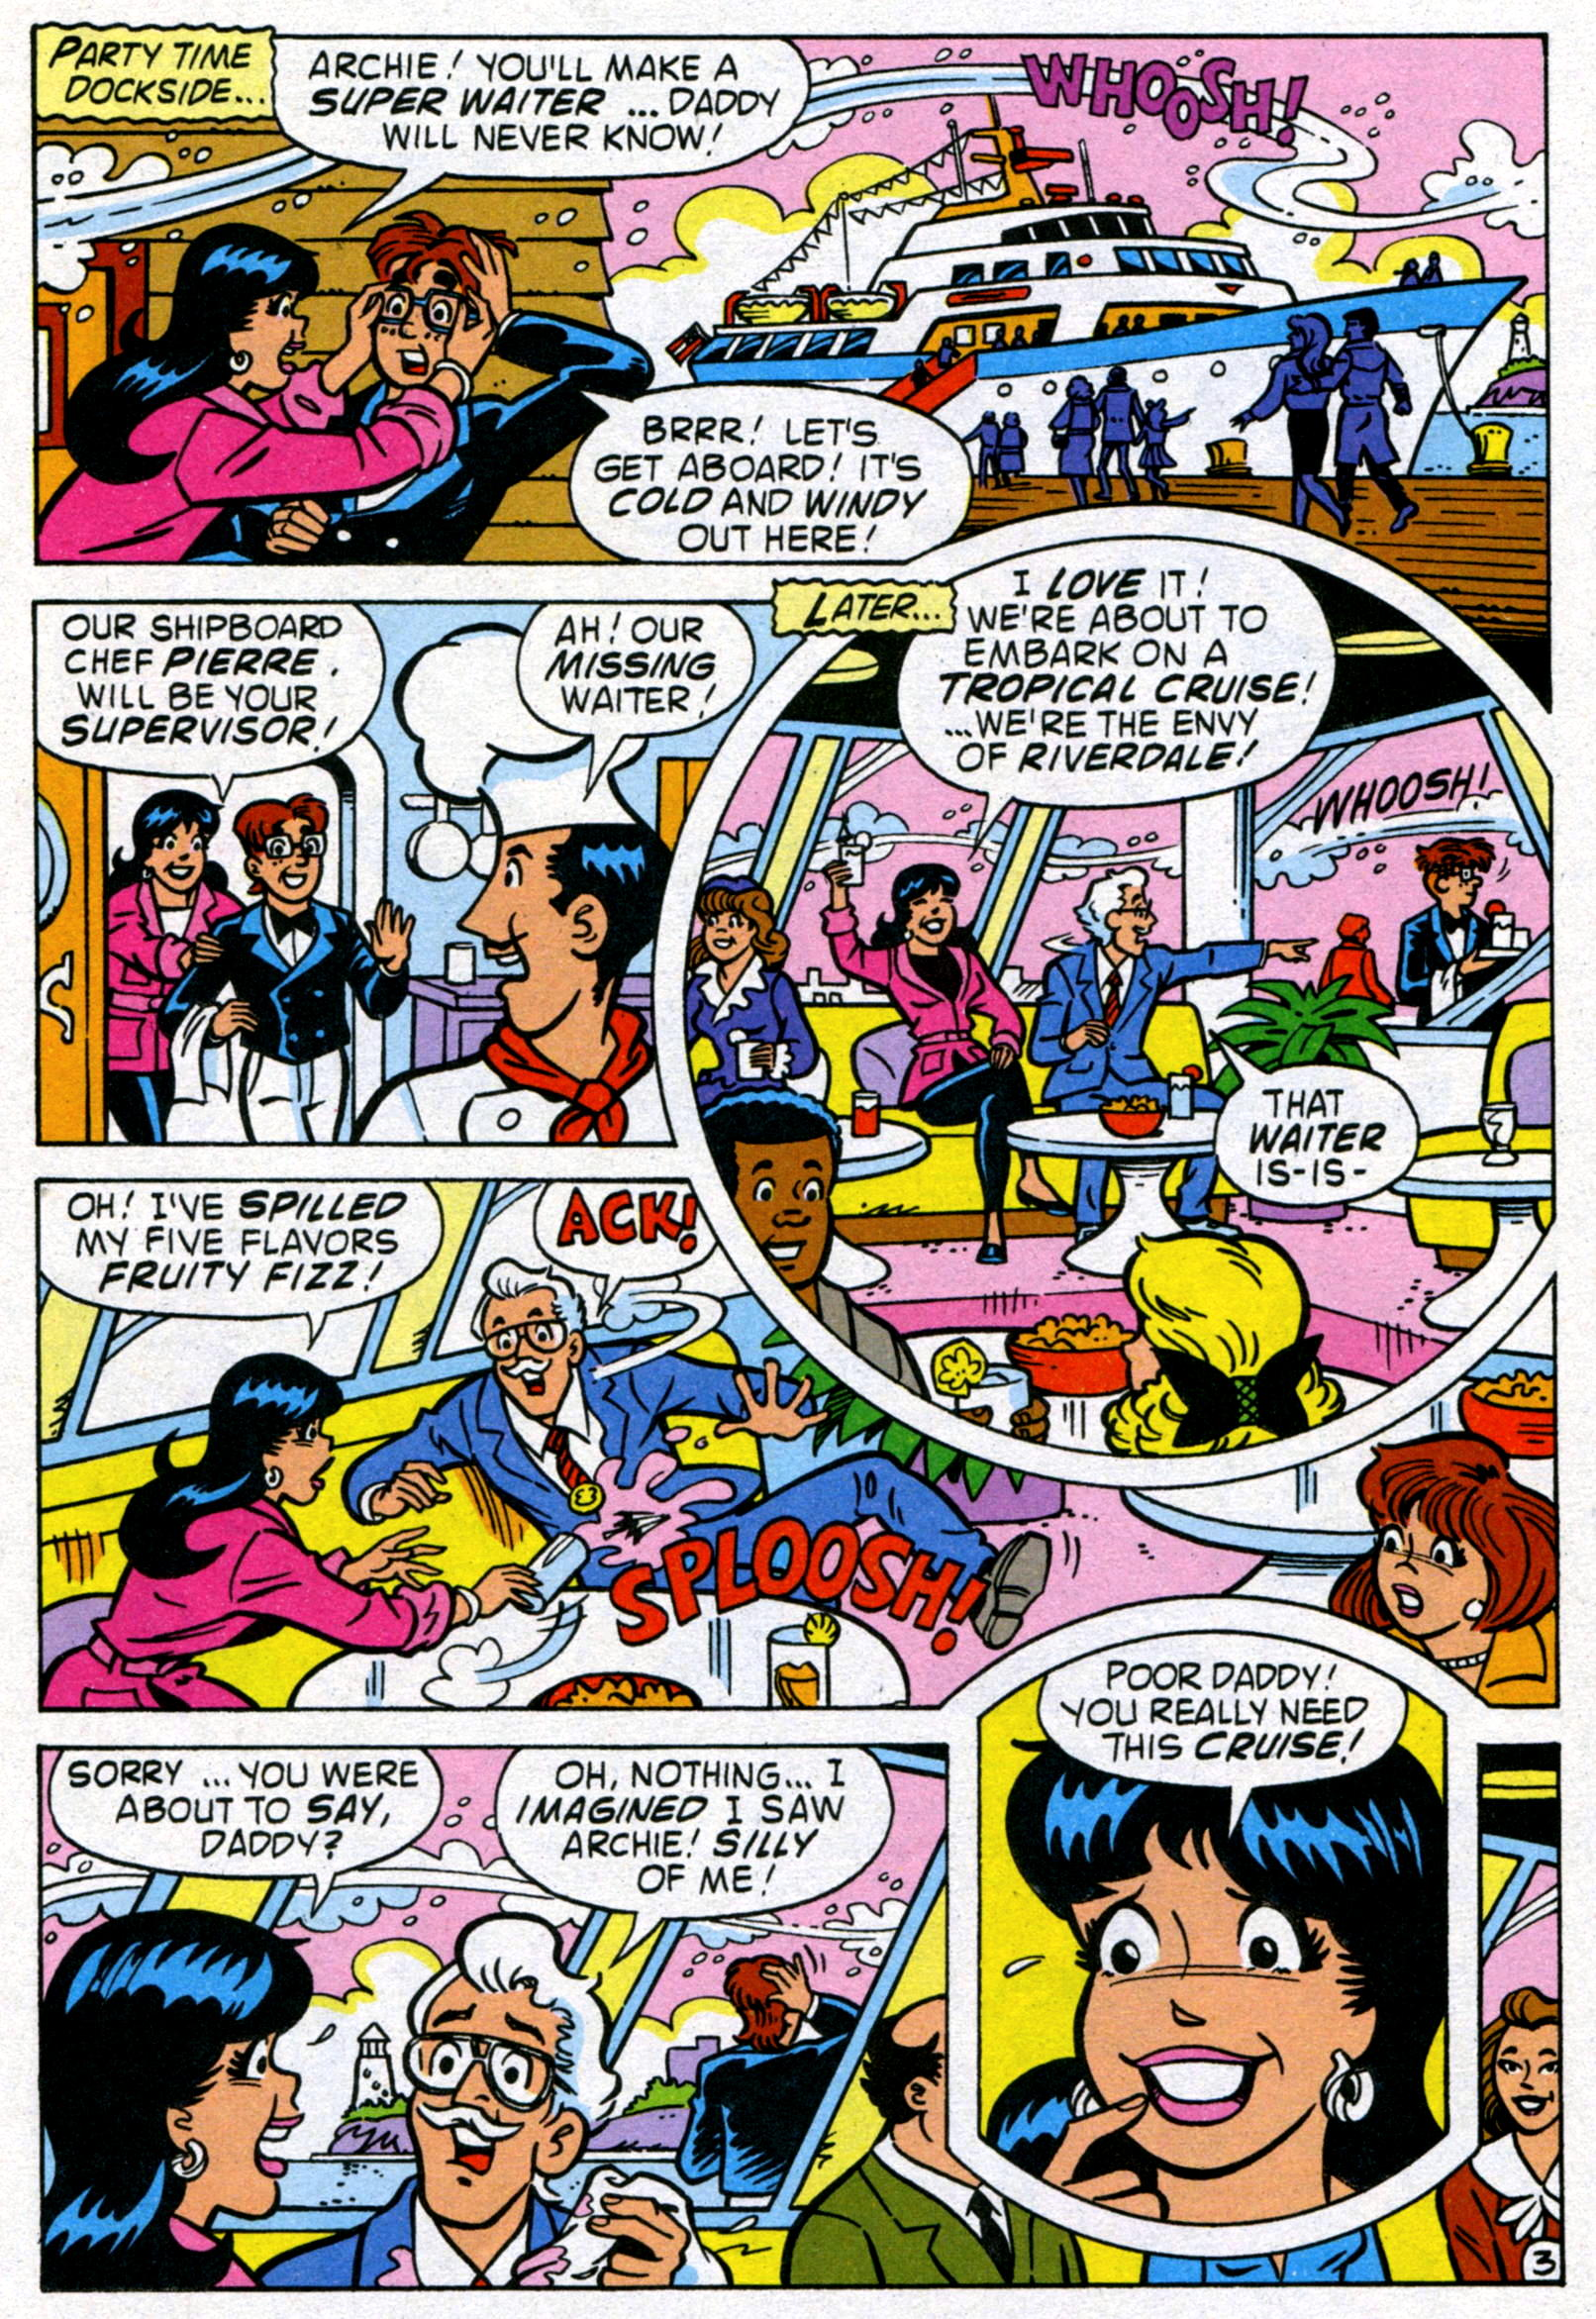 Read online World of Archie comic -  Issue #14 - 5